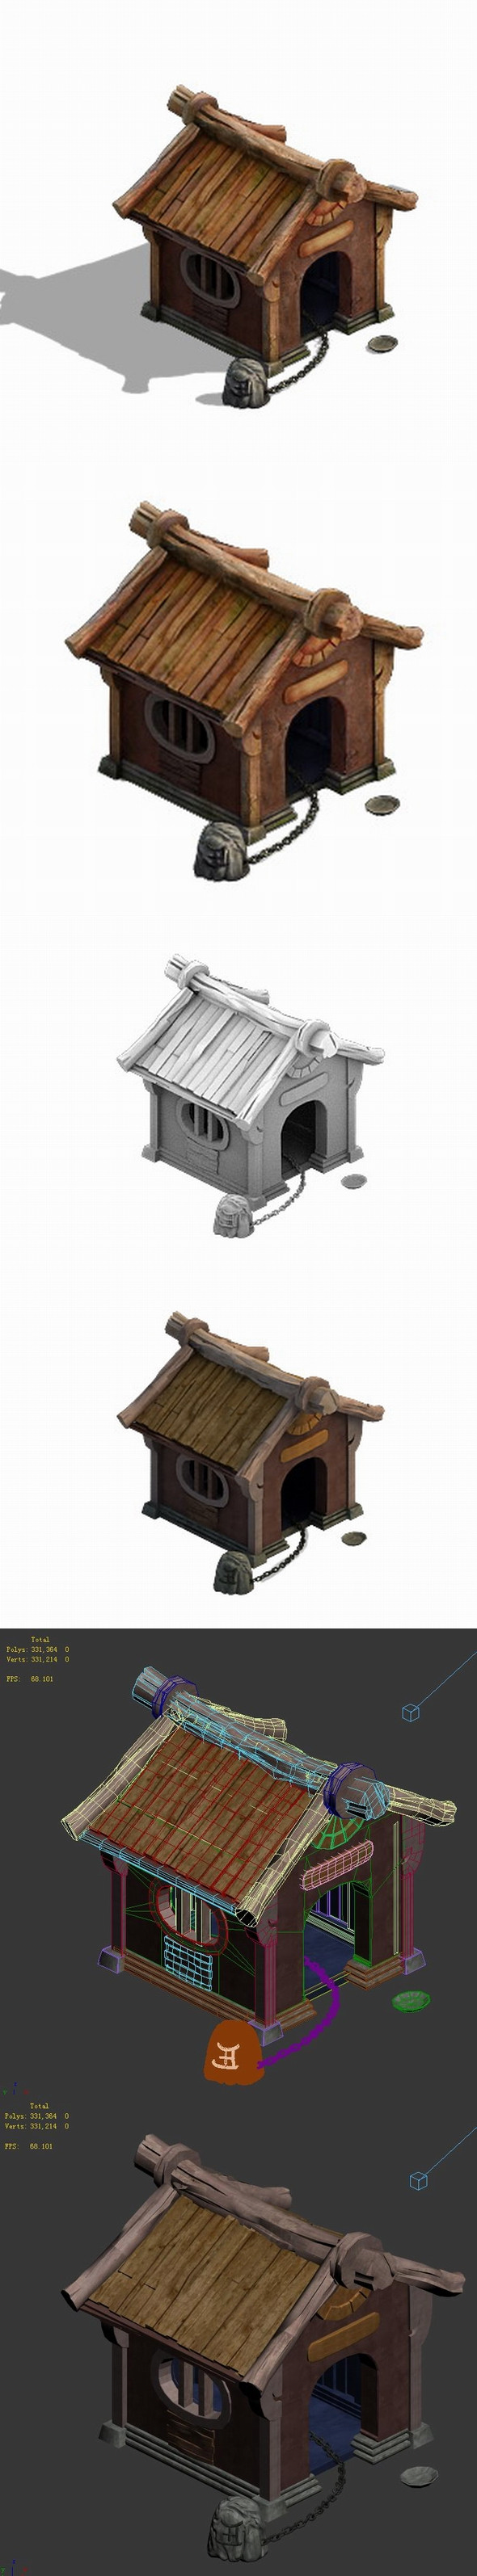 Family - dog house - 3DOcean Item for Sale